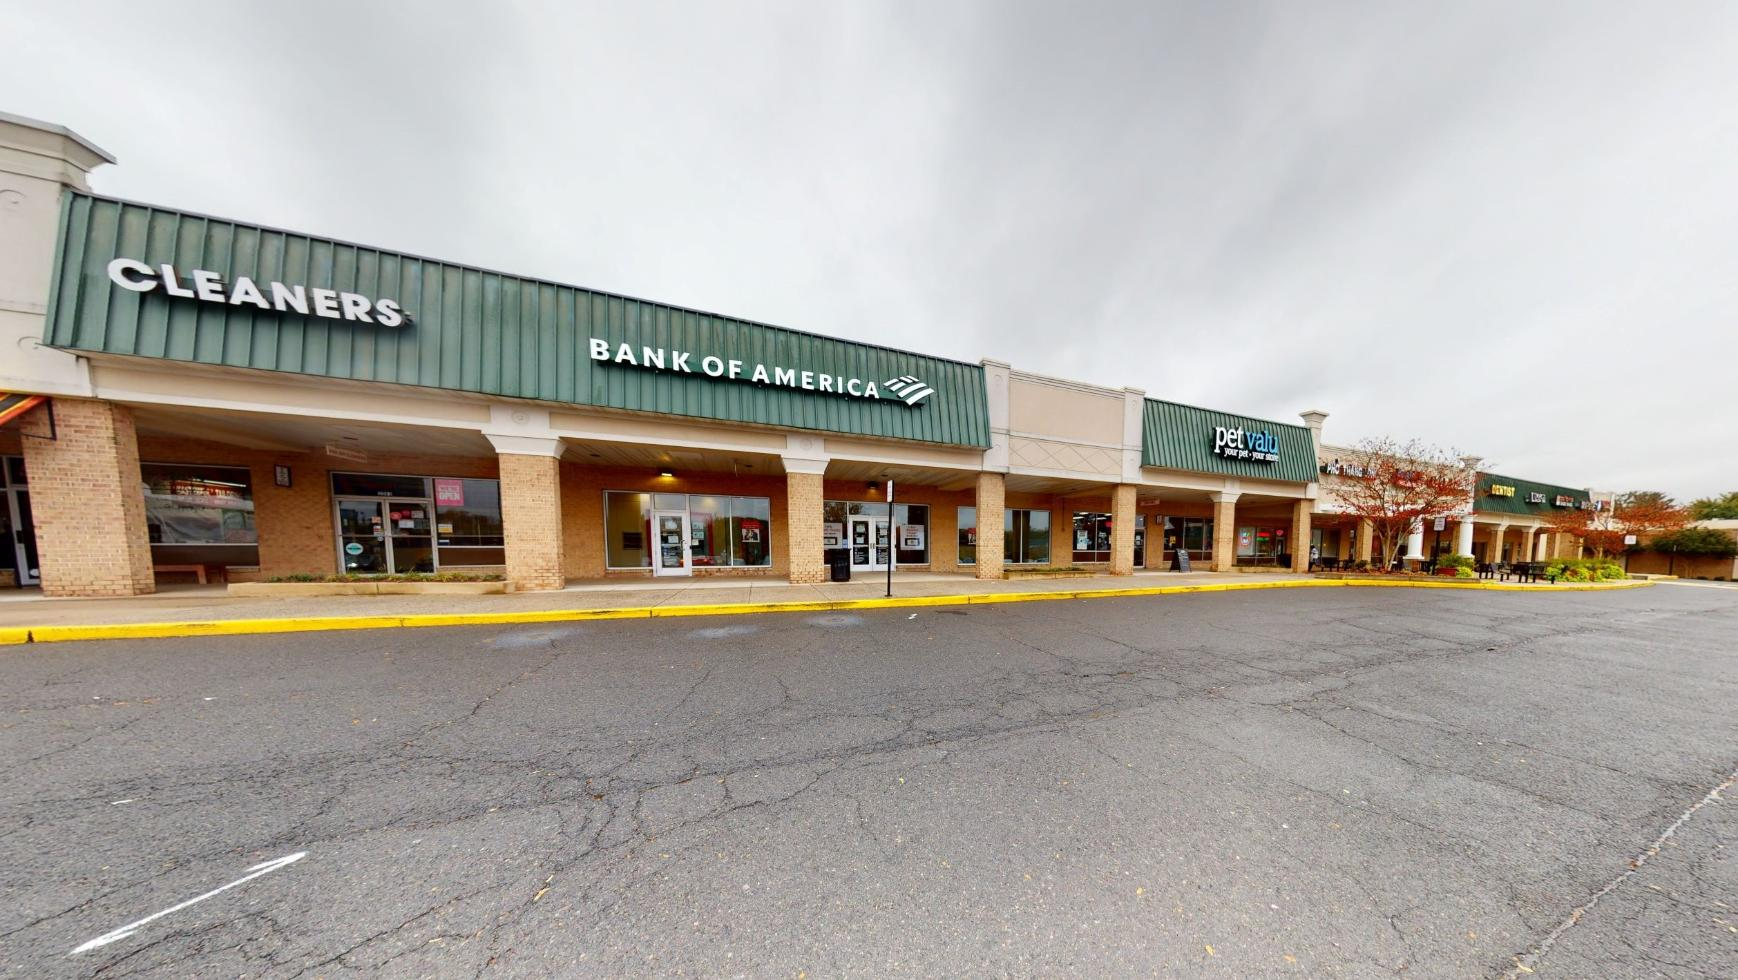 Bank of America financial center with walk-up ATM | 3065 Nutley St, Fairfax, VA 22031